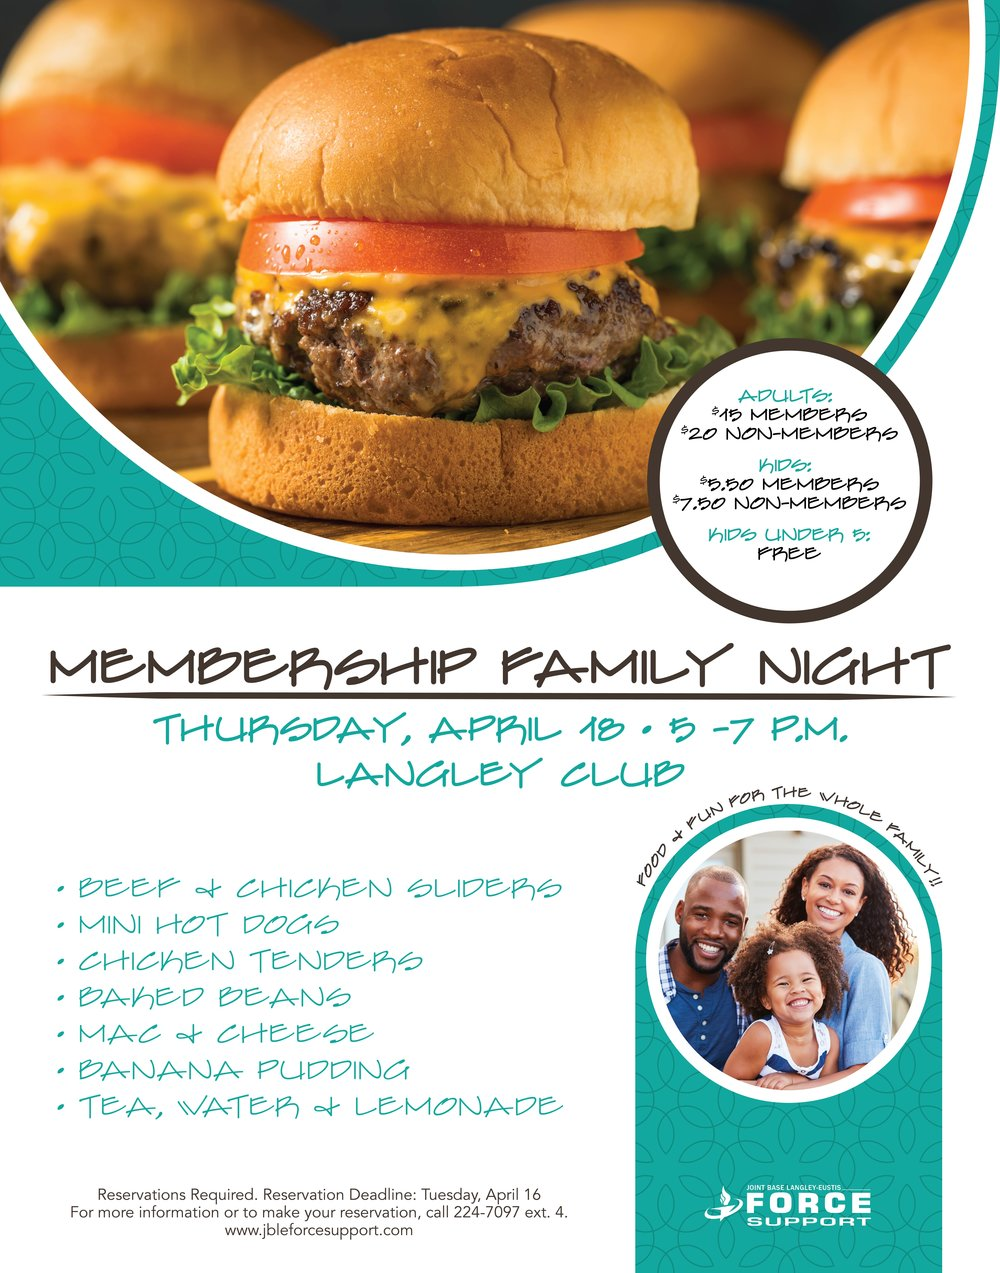 04-19 Membership Family Night.jpg